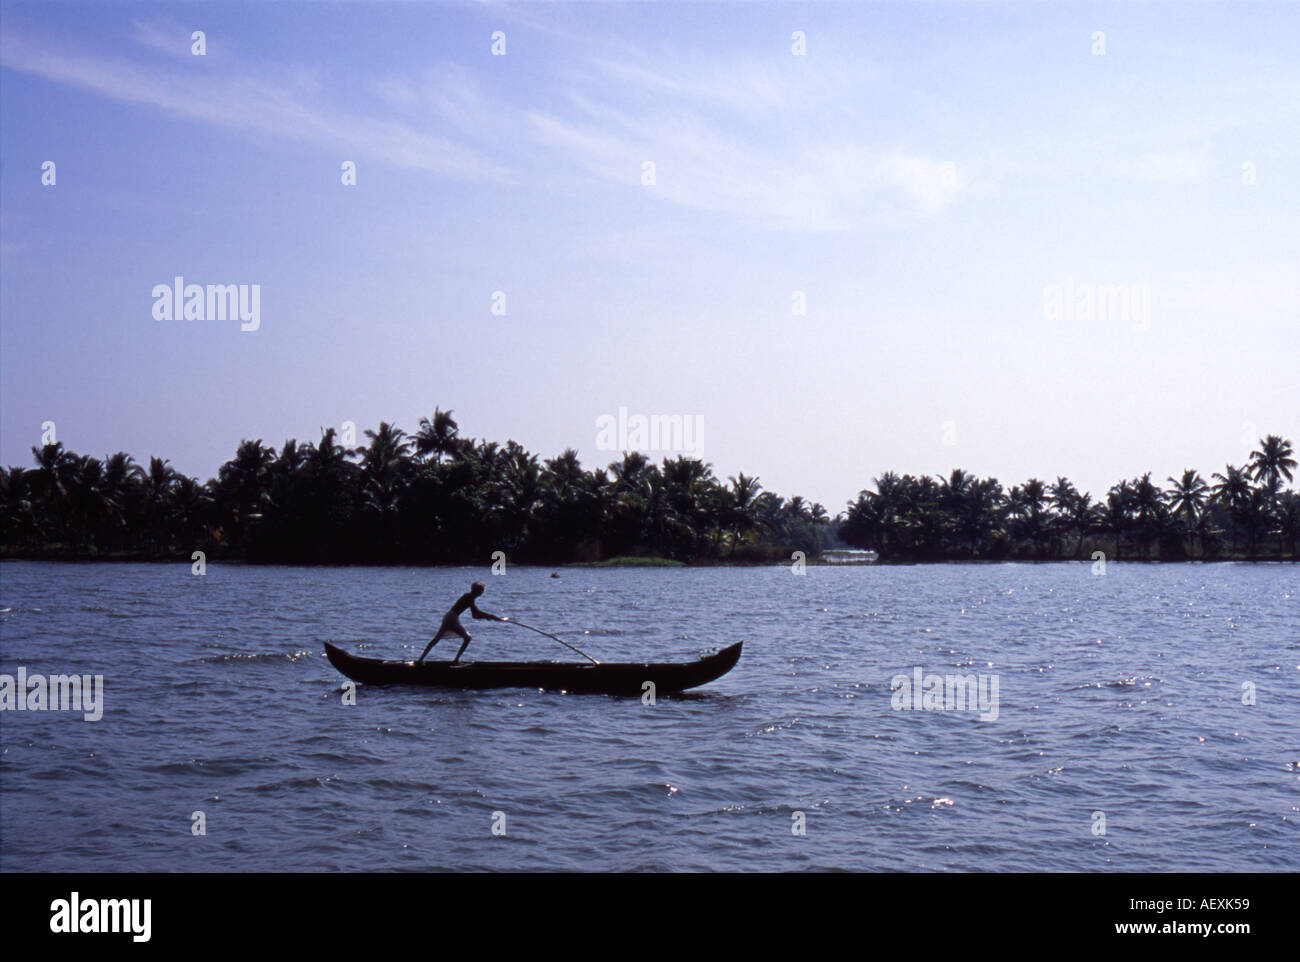 Ancient water transport by traditional rice barge Kerala India - Stock Image